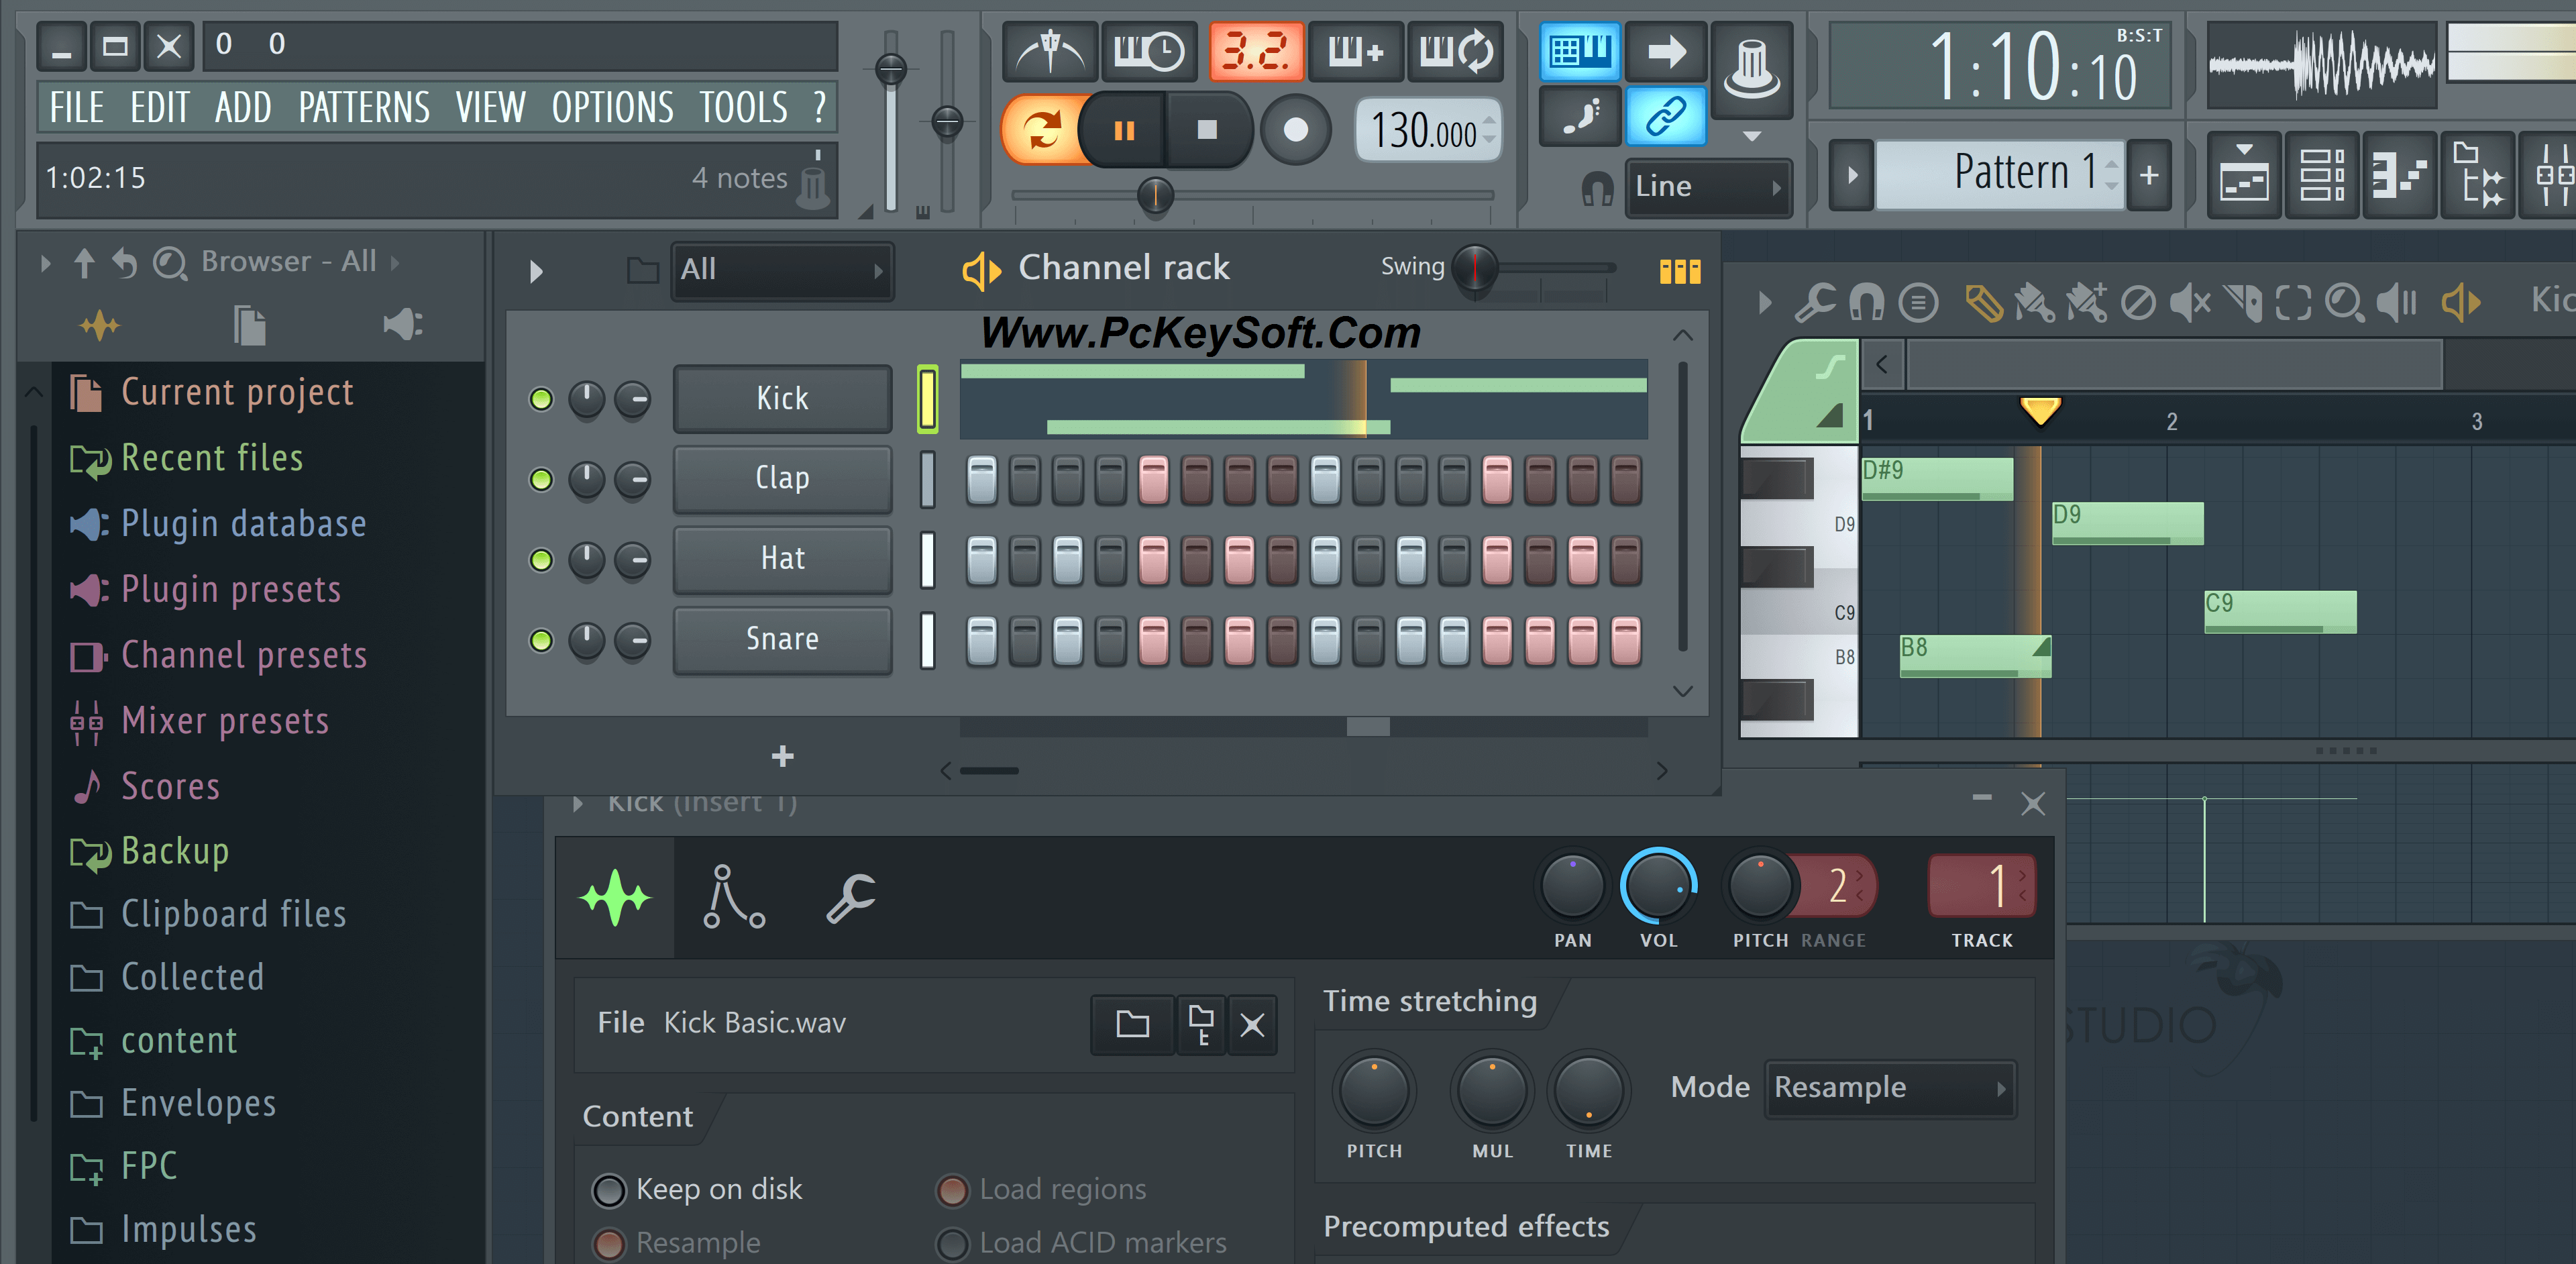 Fl studio 10.0 download